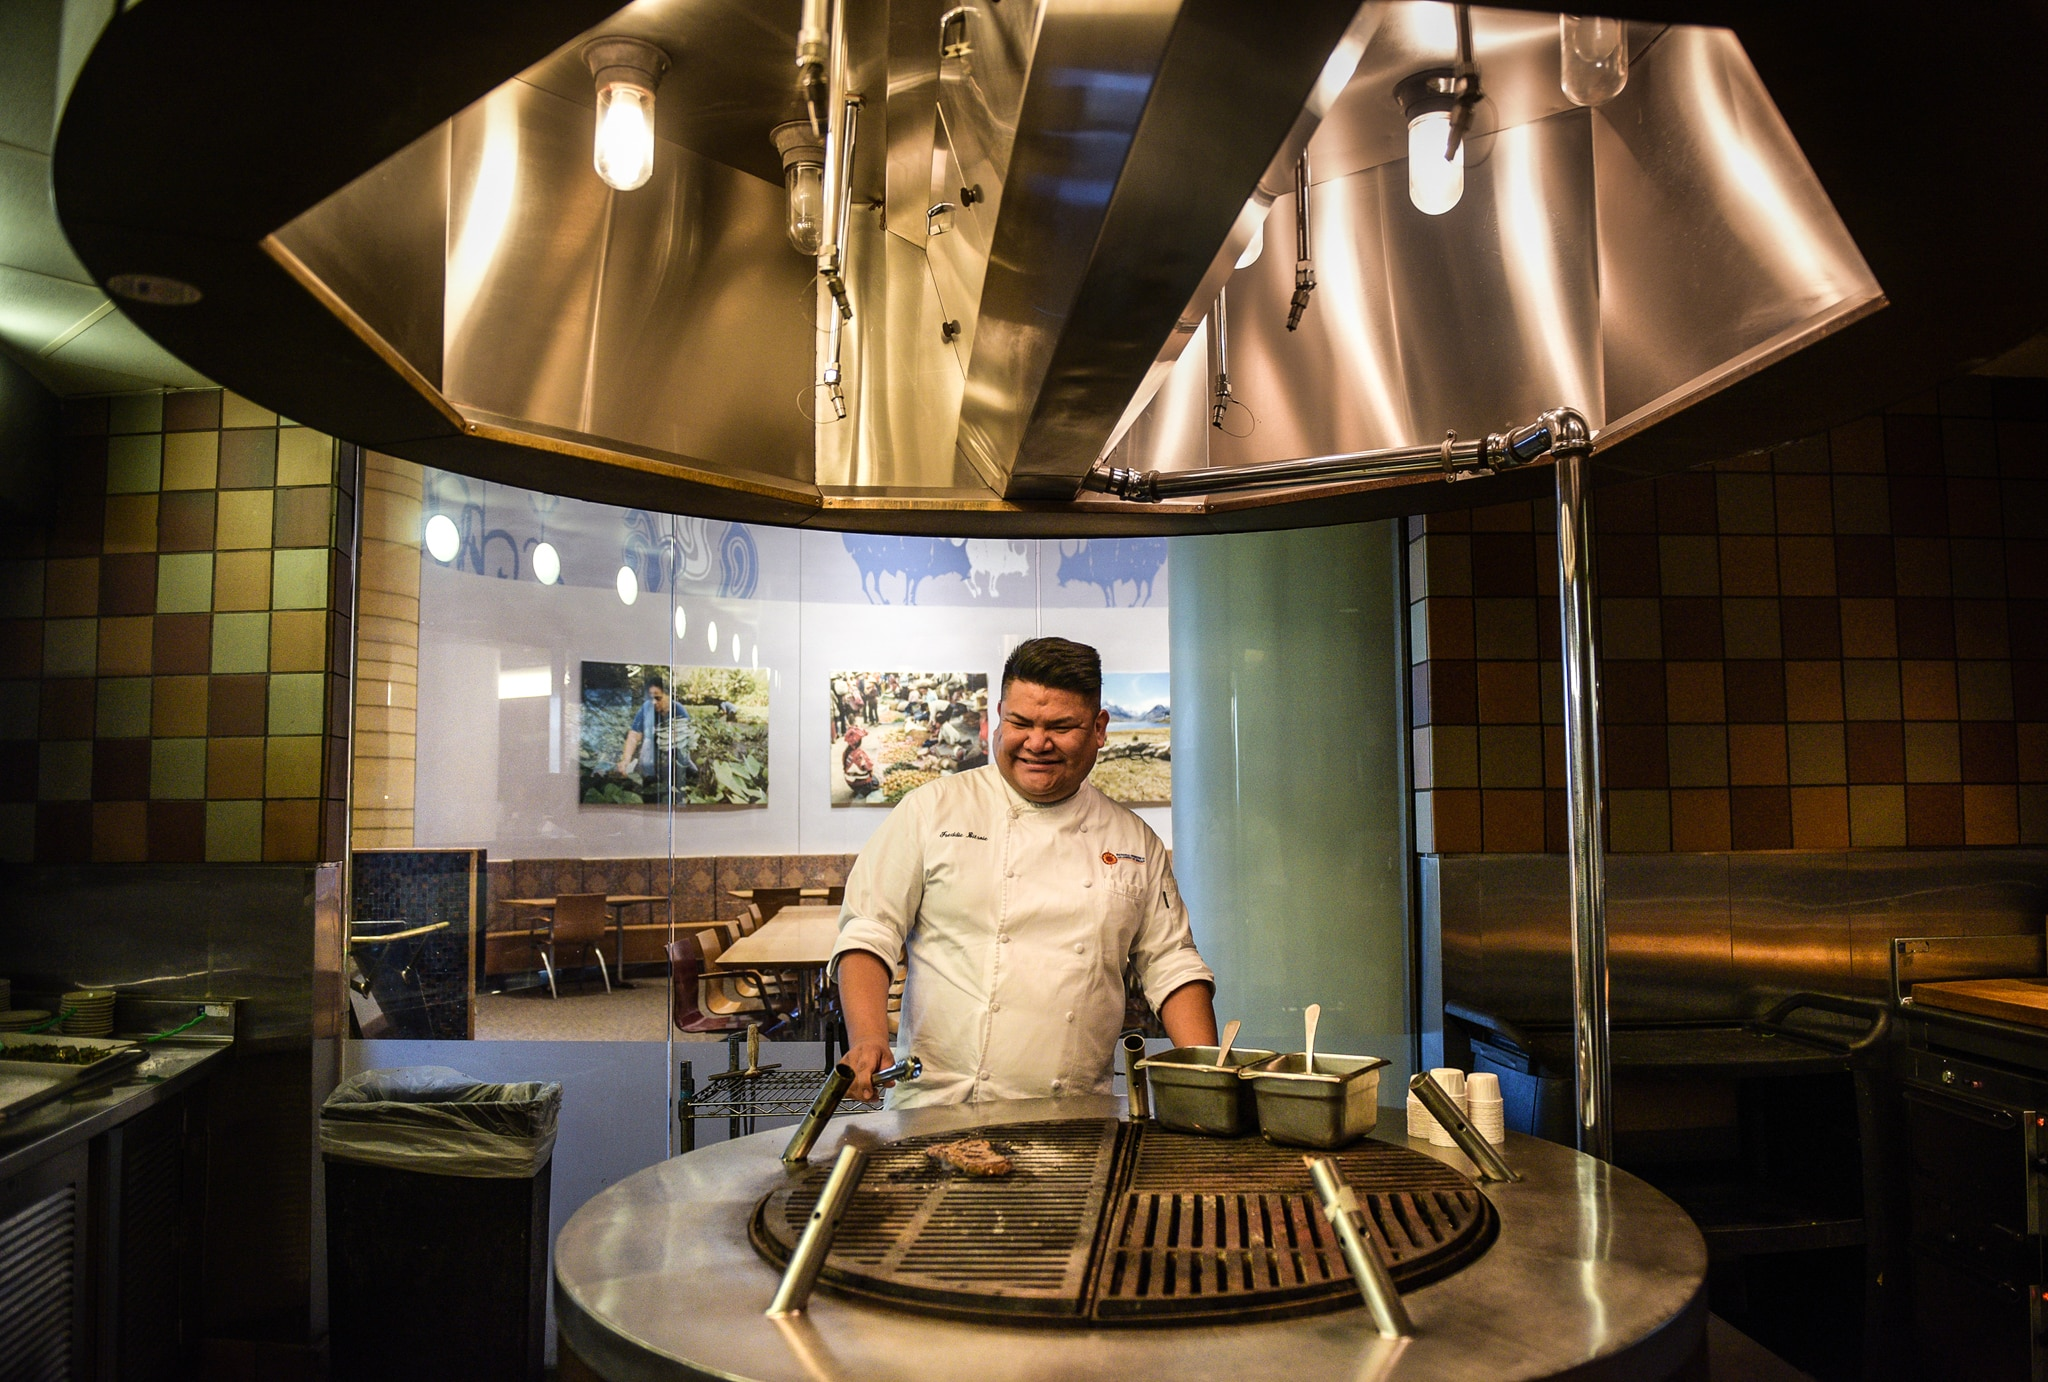 Freddie Bitsoie cooking meat on grill in large kitchen (© Carol Guzy)